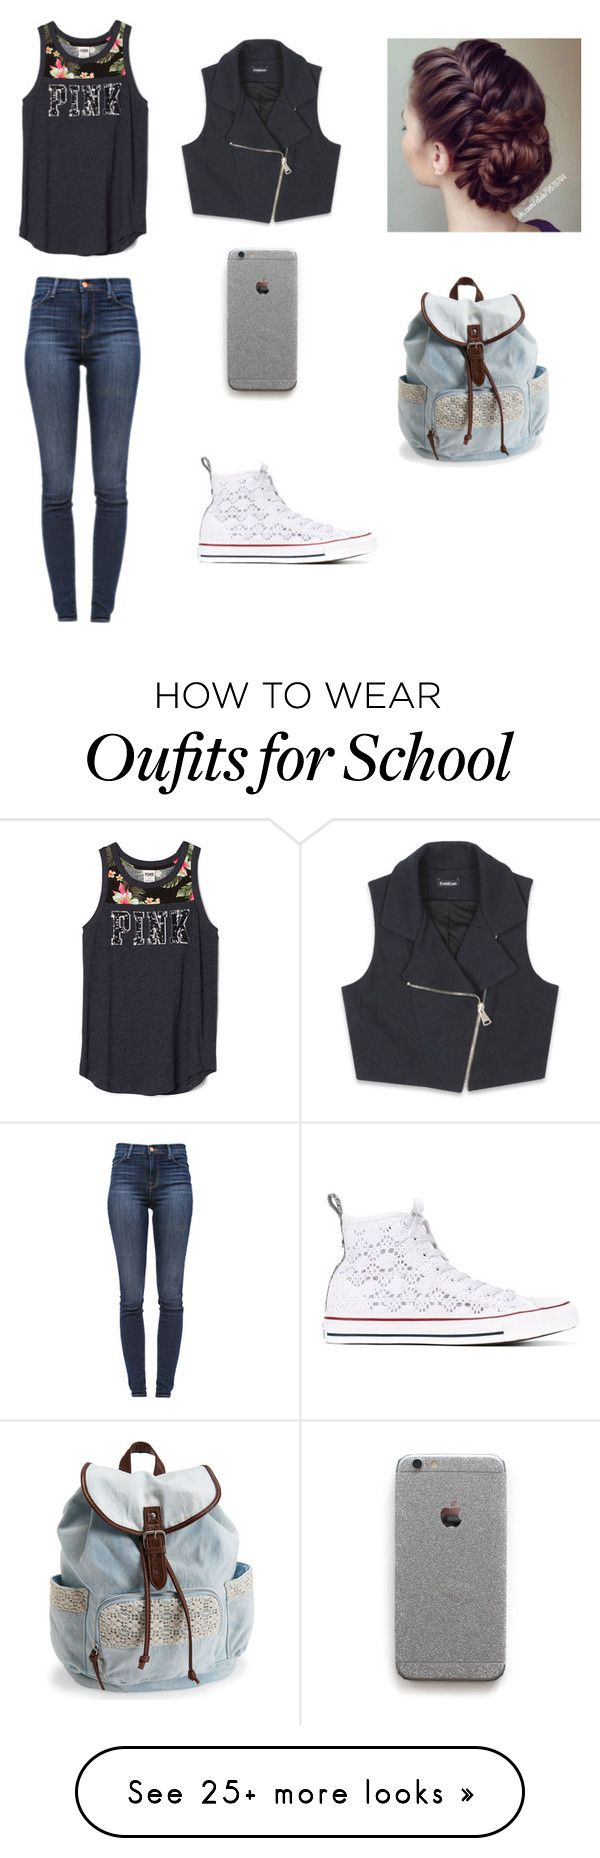 """school"" by onfleekyo on Polyvore featuring J Brand, Converse, Aéropostale and Bebe"